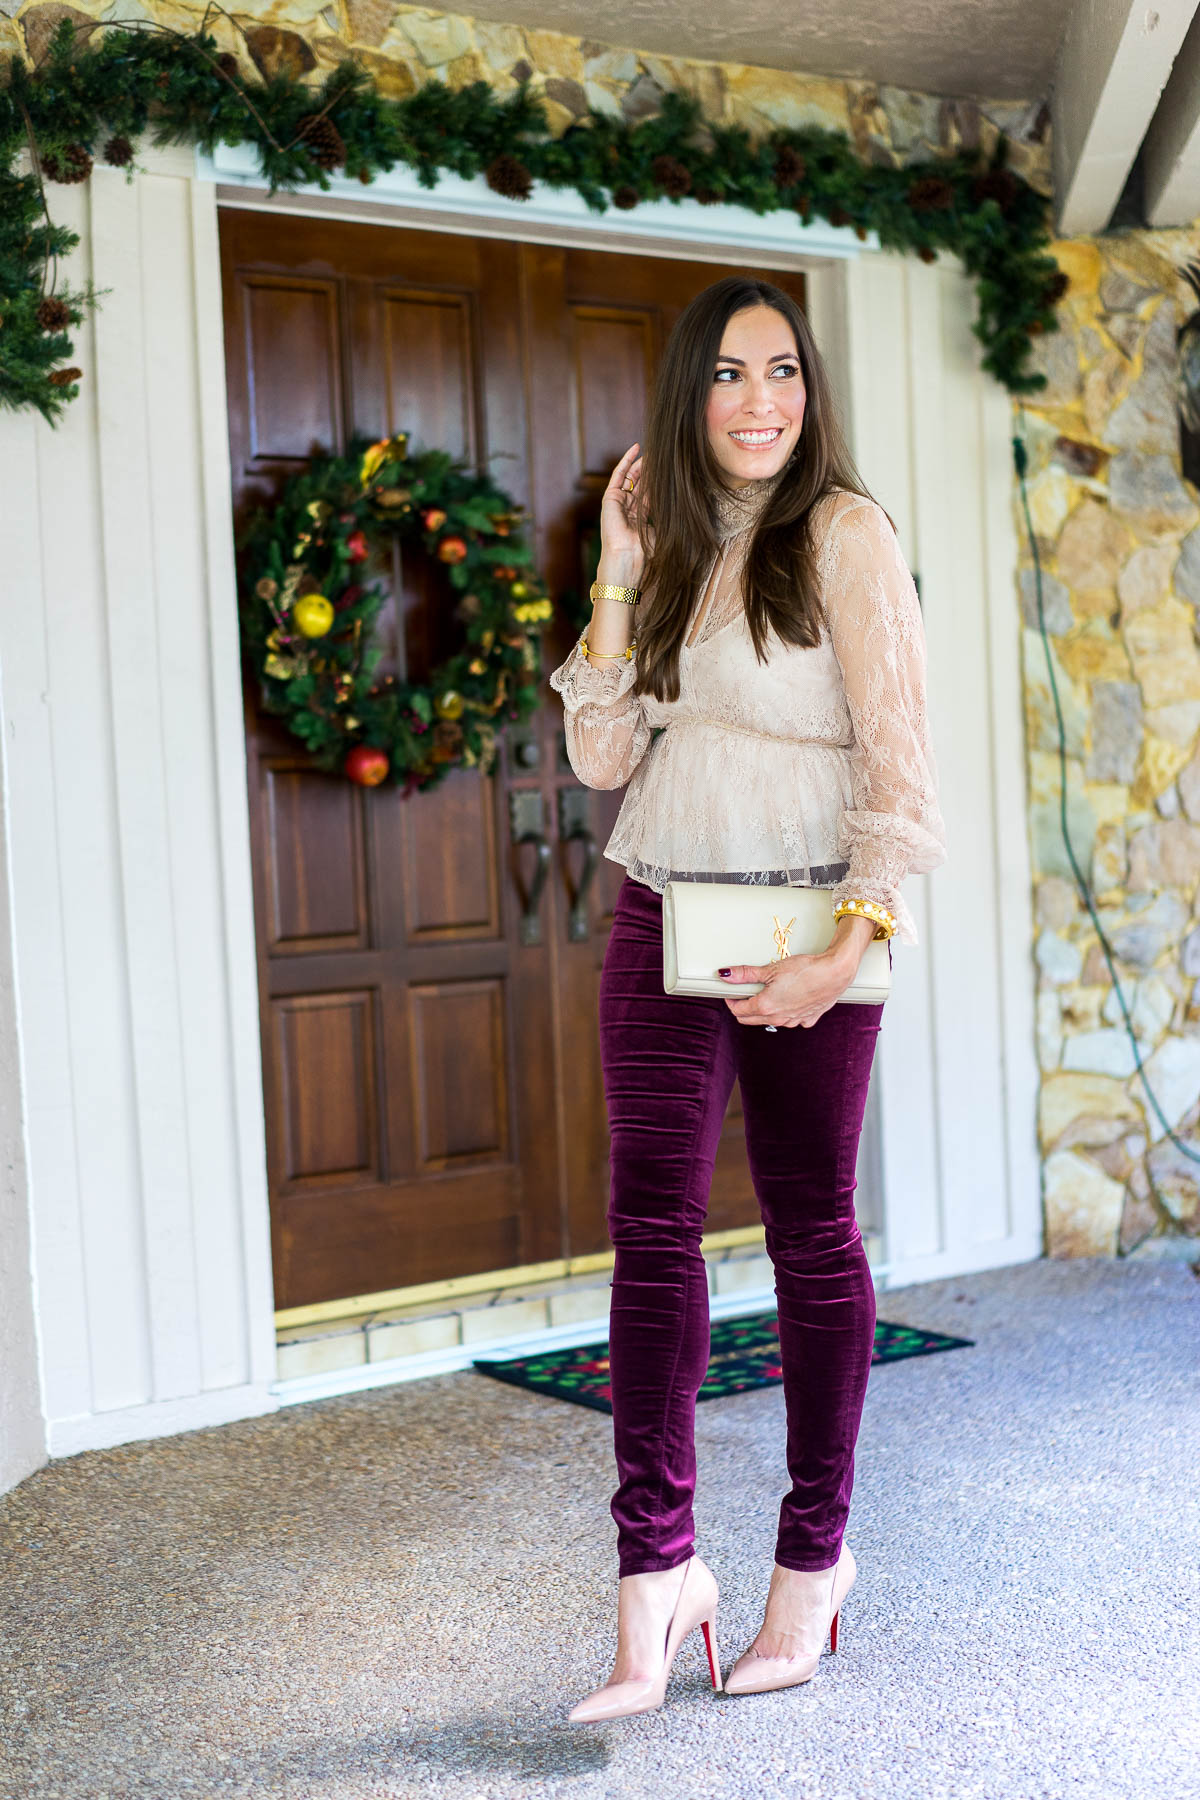 A Glam Lifestyle blogger Amanda shares her Christmas outfit wearing Intermix Genevieve blush lace top and AG Jeans burgundy velvet leggings with Christian Louboutin nude Pigalle pumps carrying YSL monogram clutch